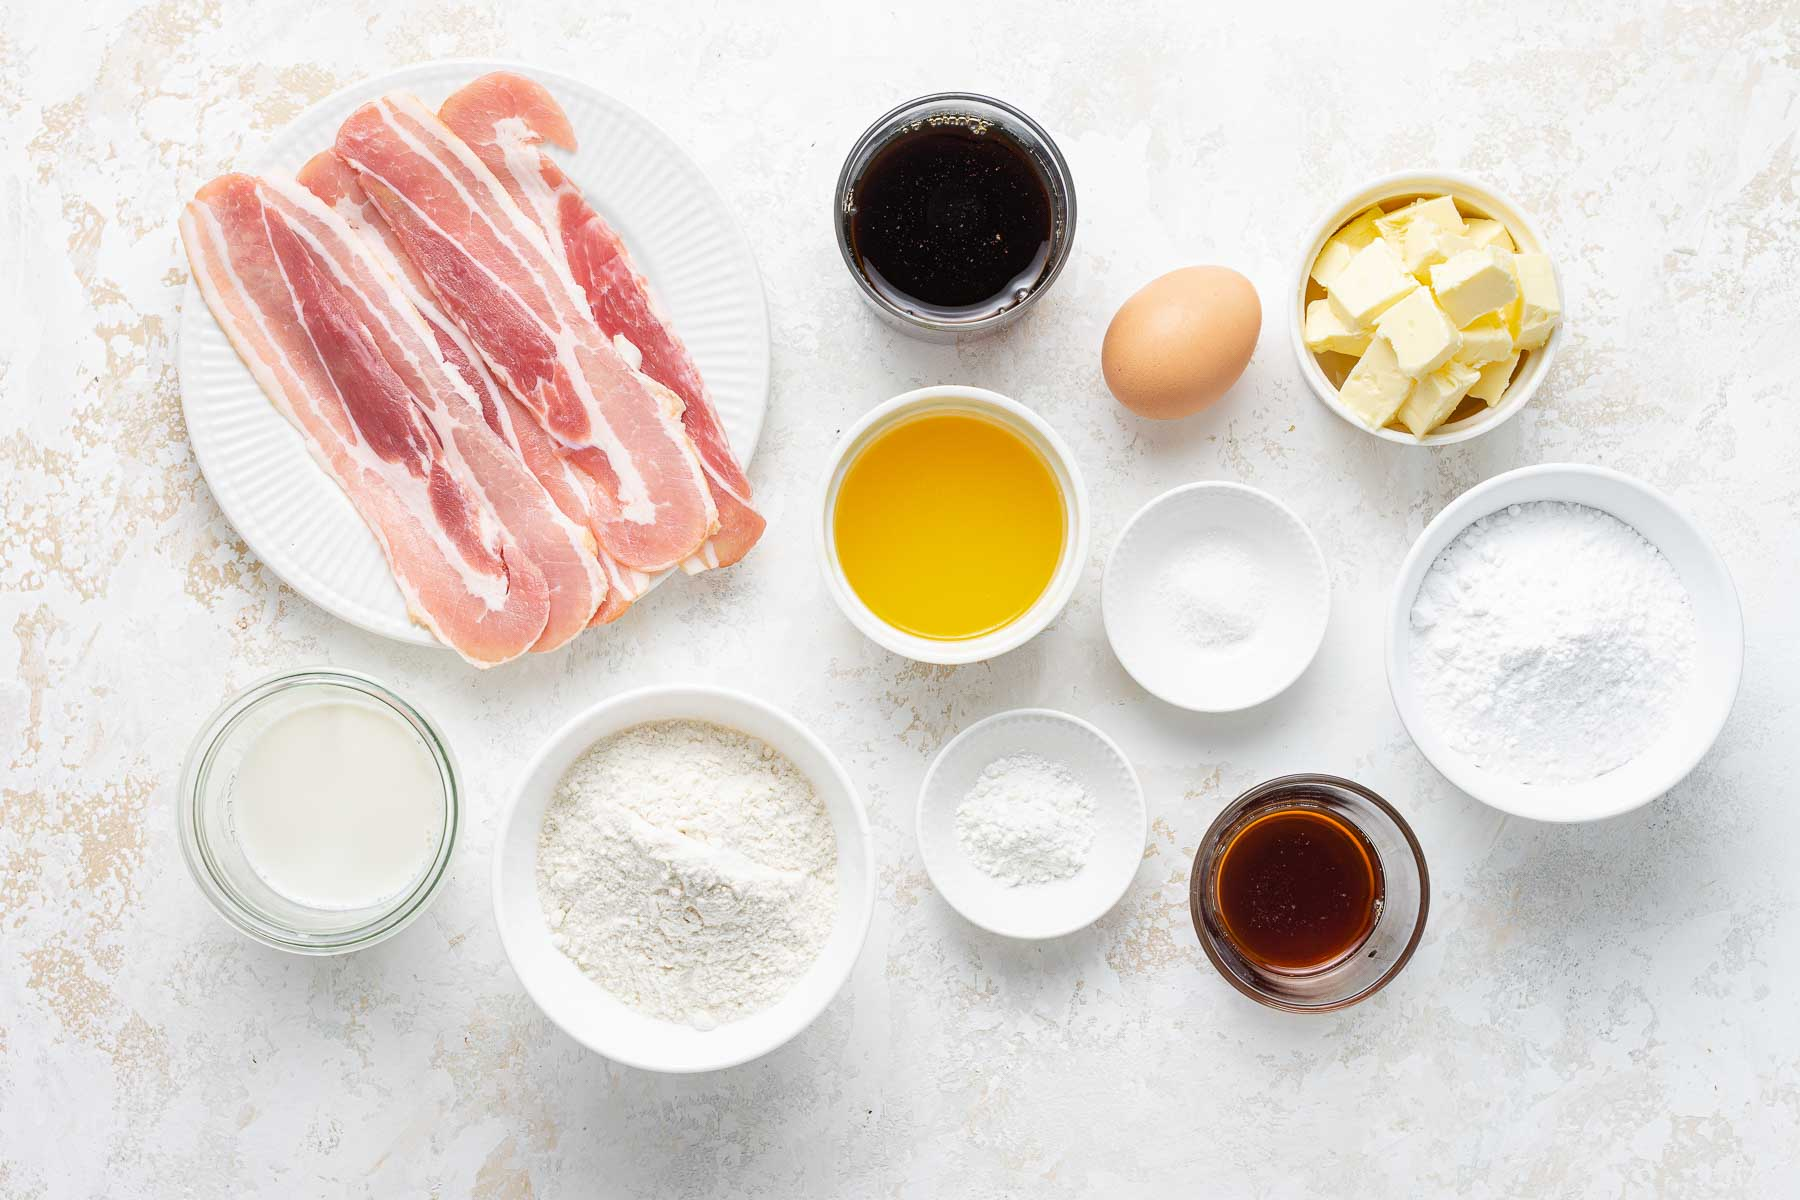 Ingredients for maple bacon cupcakes.